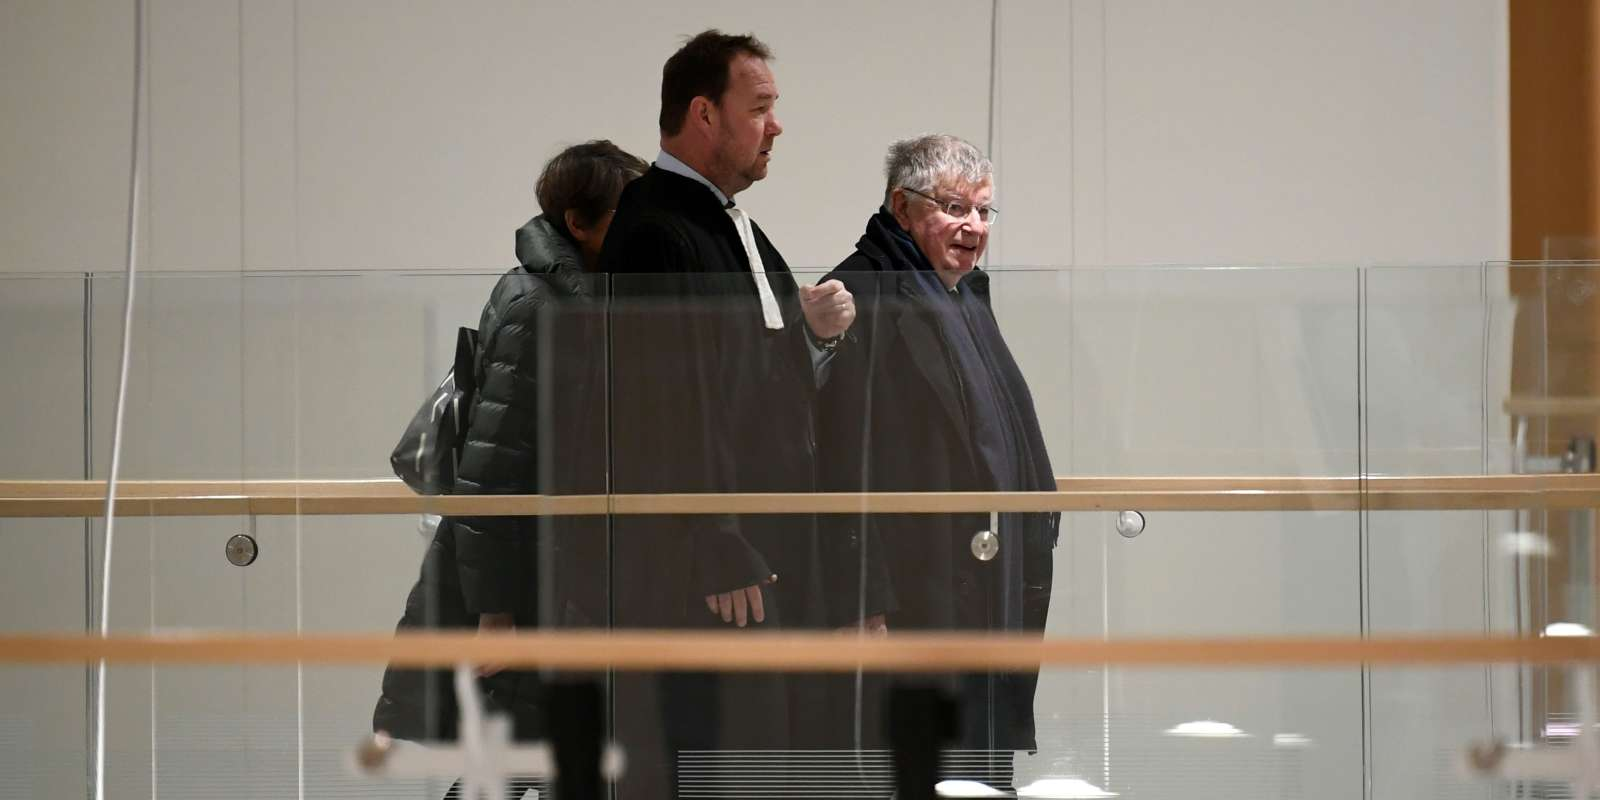 Former France Telecom CEO Didier Lombard (R) arrives at Paris Courthouse on December 20, 2019 for the ruling in France Telecom trial over series of suicides. Paris' court gives its judgment on December 20, 2019 in the trial of several former members of France Telecom's management for